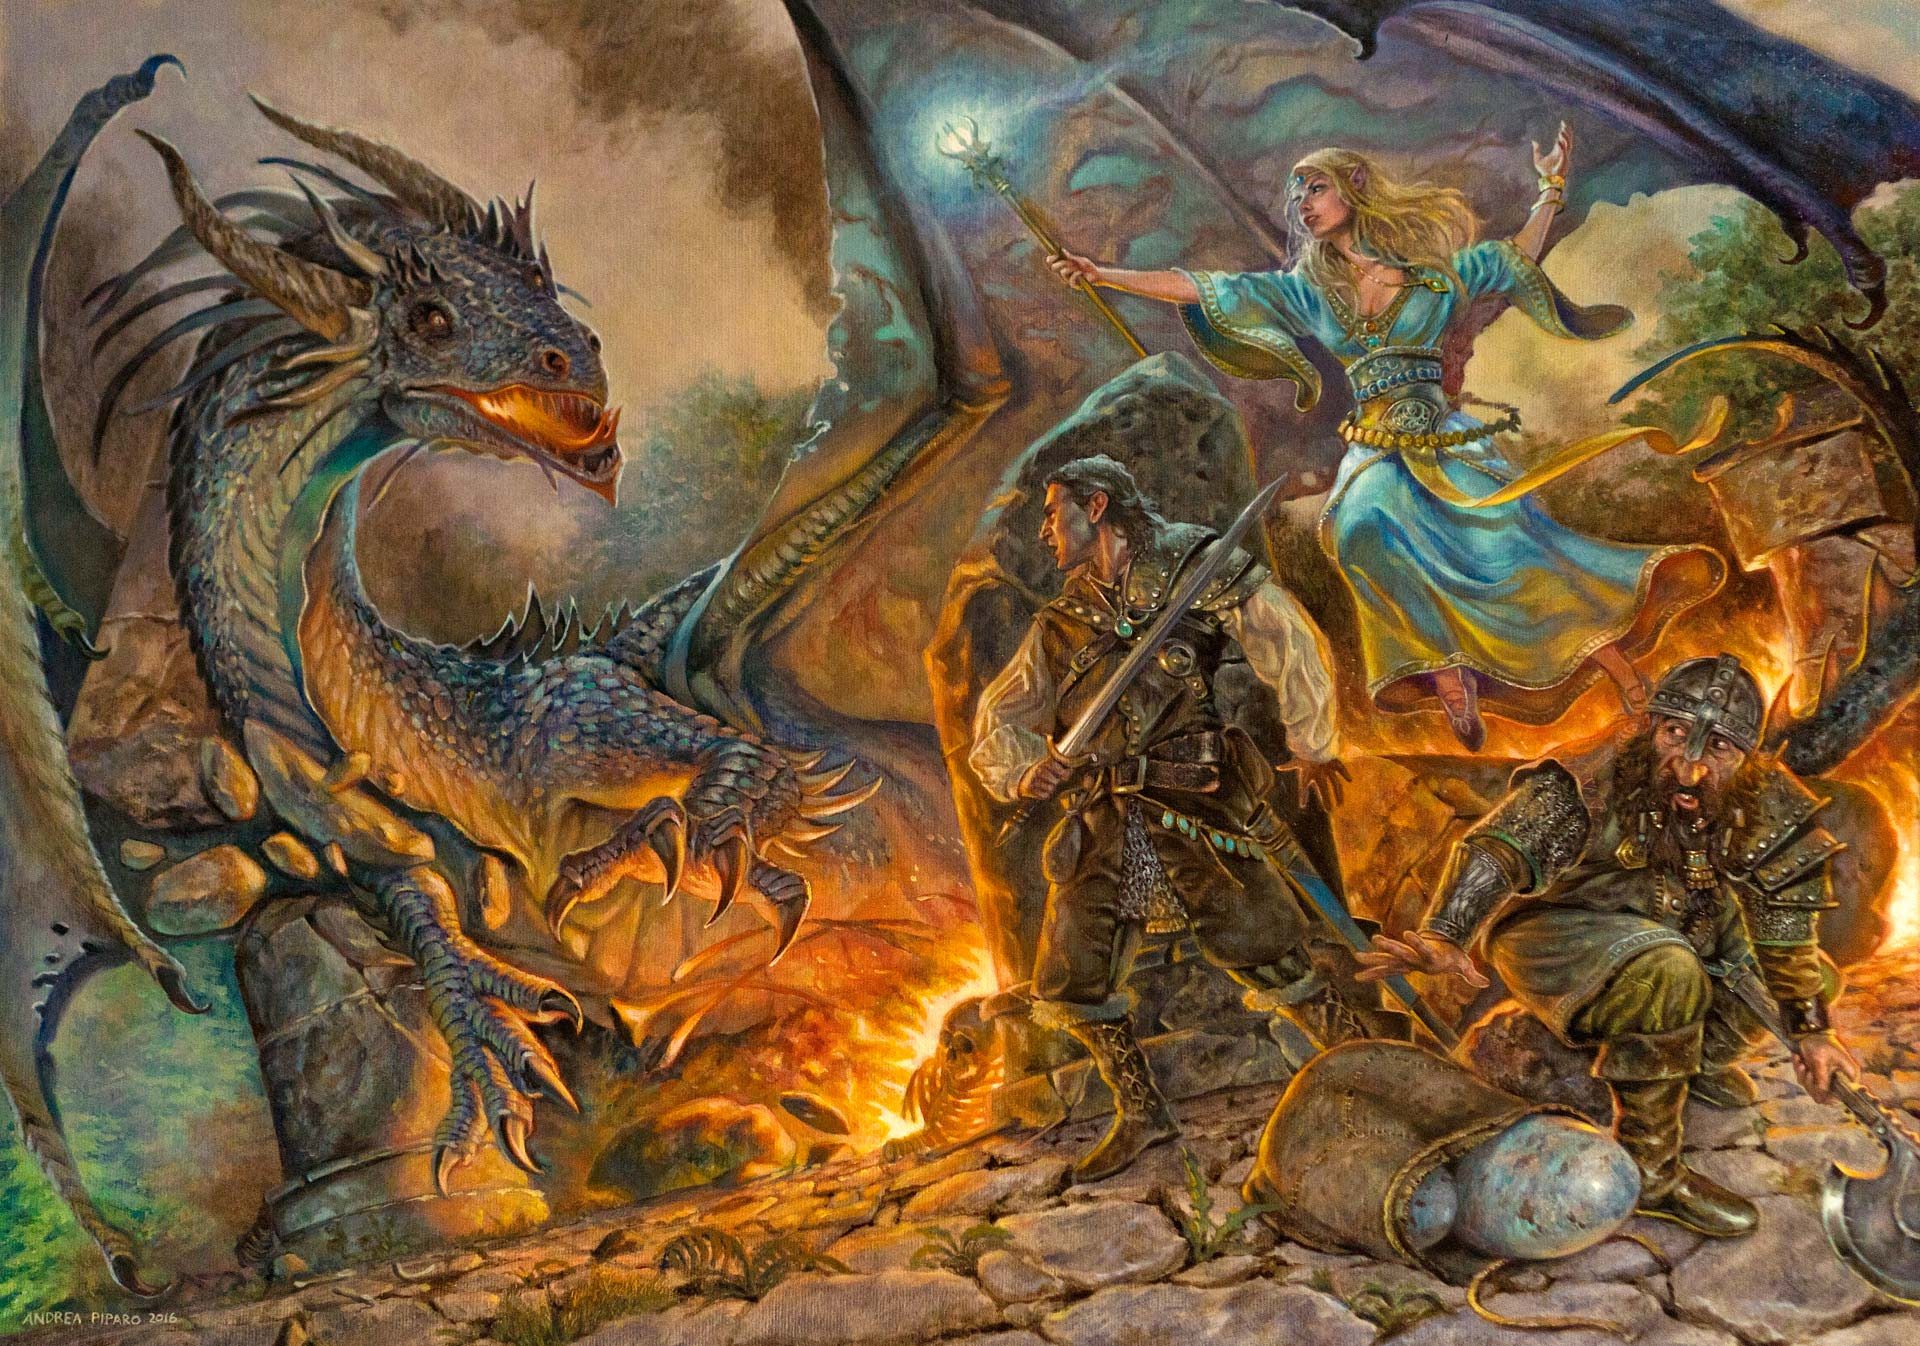 Adventurers, la lotta del drago